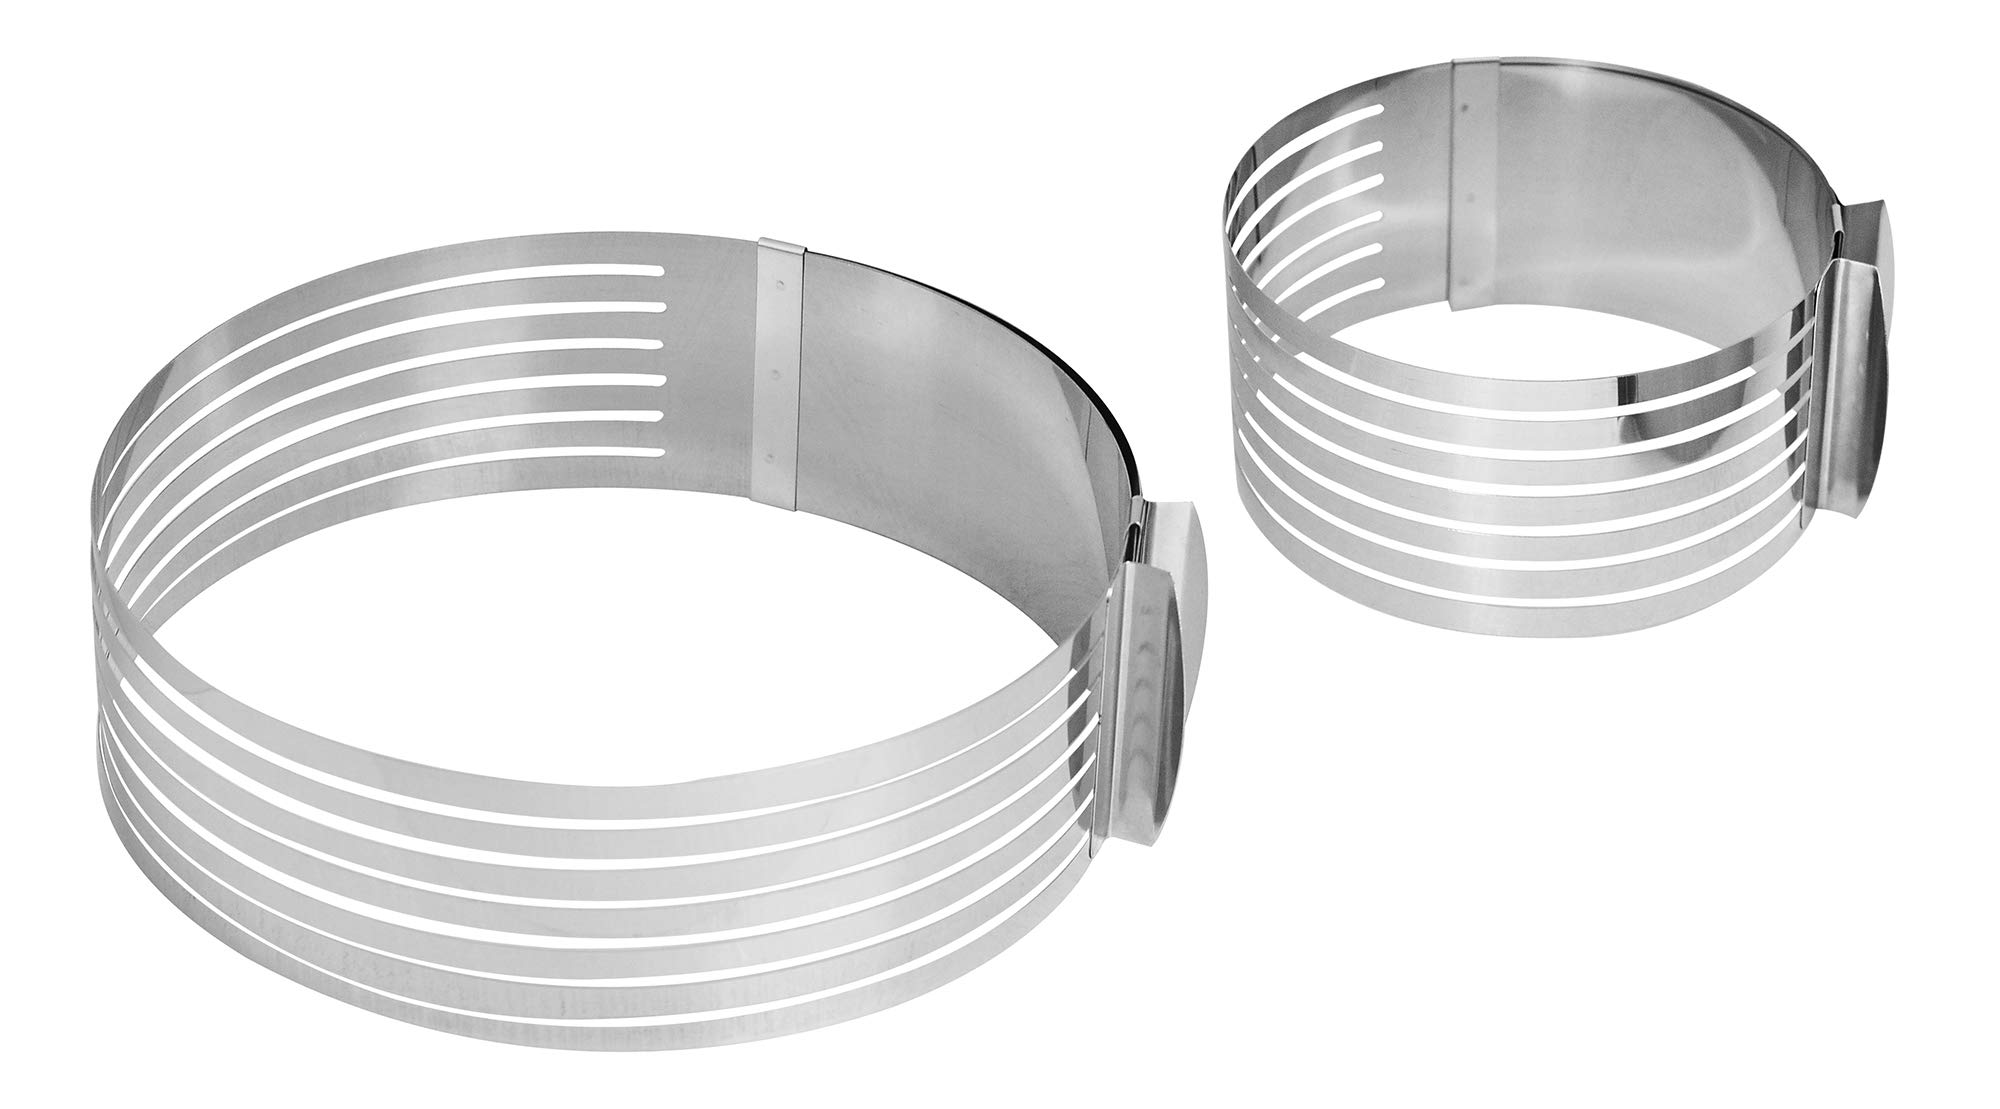 """NewlineNY Stainless Steel 2 Pieces Adjustable Multilayer Circular Molding Plating Forming Round Cake Rings, Set of 2 (10 to 12"""" + 6 to 8"""" x 3.2"""" H)"""